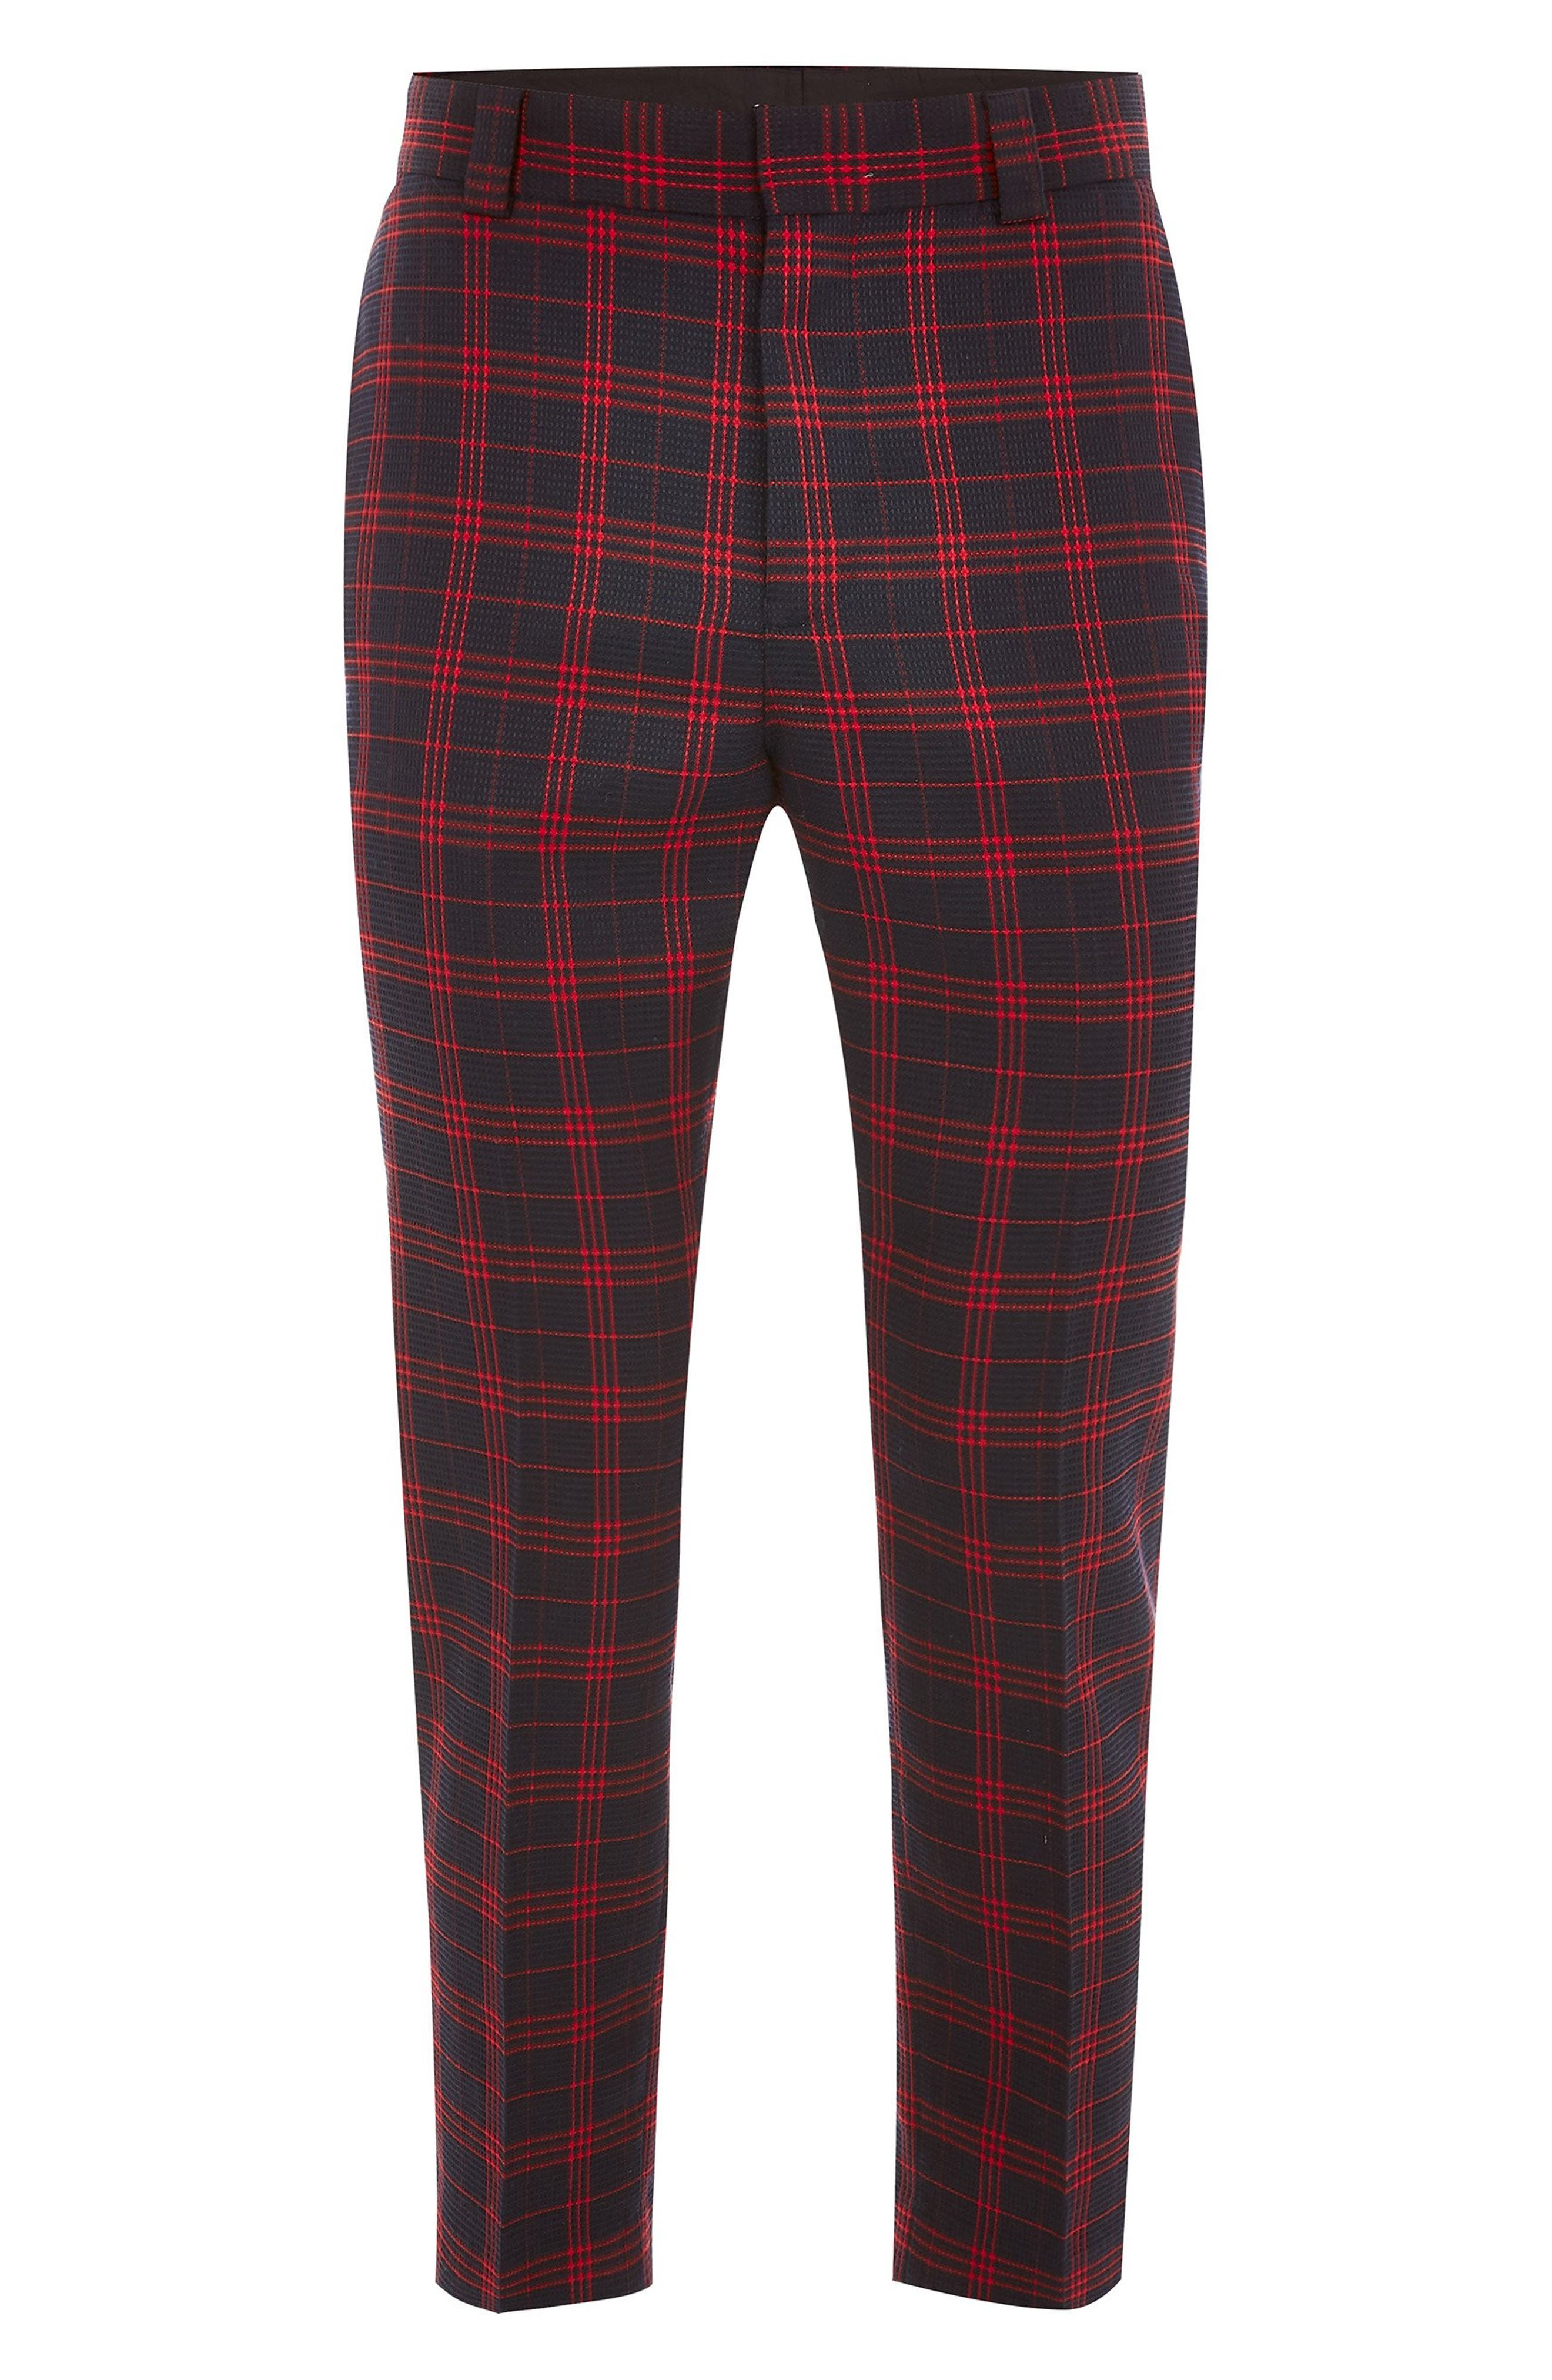 TOPMAN, Plaid Tapered Trousers, Alternate thumbnail 4, color, 401